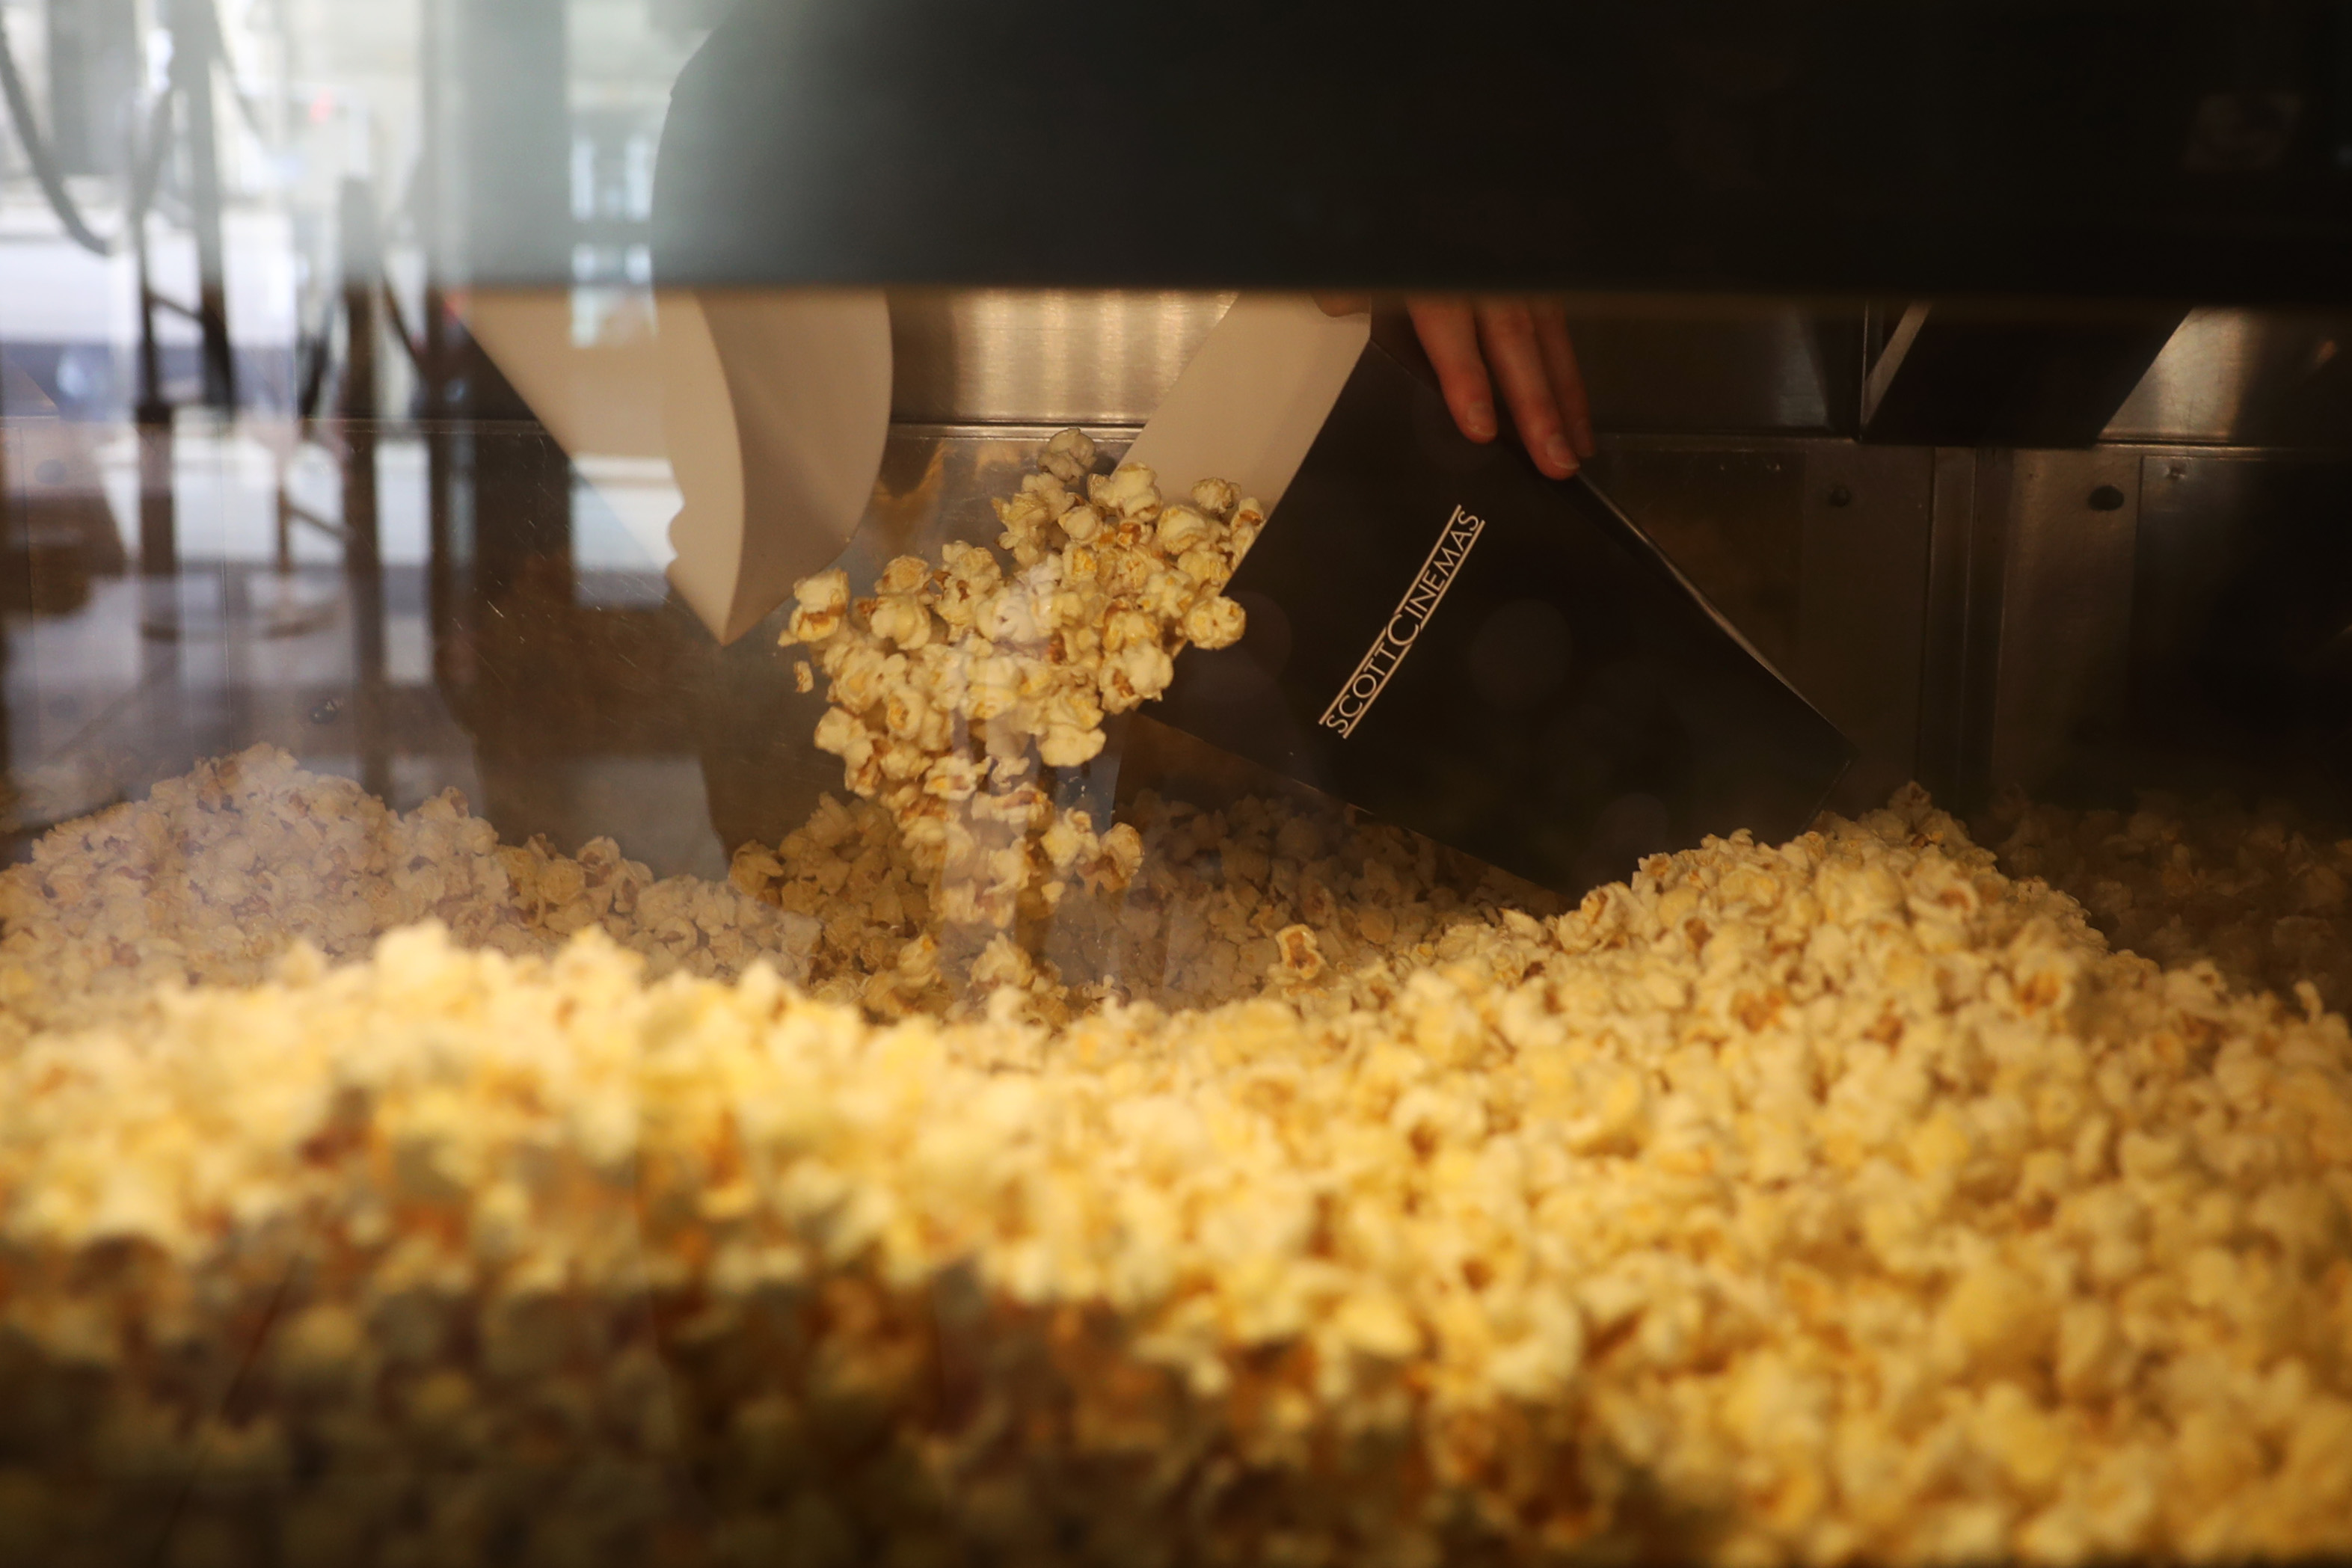 <p>TRURO, ENGLAND - MAY 17: Popcorn is served at The Plaza cinema on May 17, 2021 in Truro, England. England implements the third step in its road map out of Coronavirus lockdown today. The service industry can welcome customers inside premises to eat and drink, Fitness Classes can resume, holiday accommodation, Bingo halls, theatres, cinemas and indoor attractions will be able to welcome back customers and visitors. (Photo by Cameron Smith/Getty Images)</p>